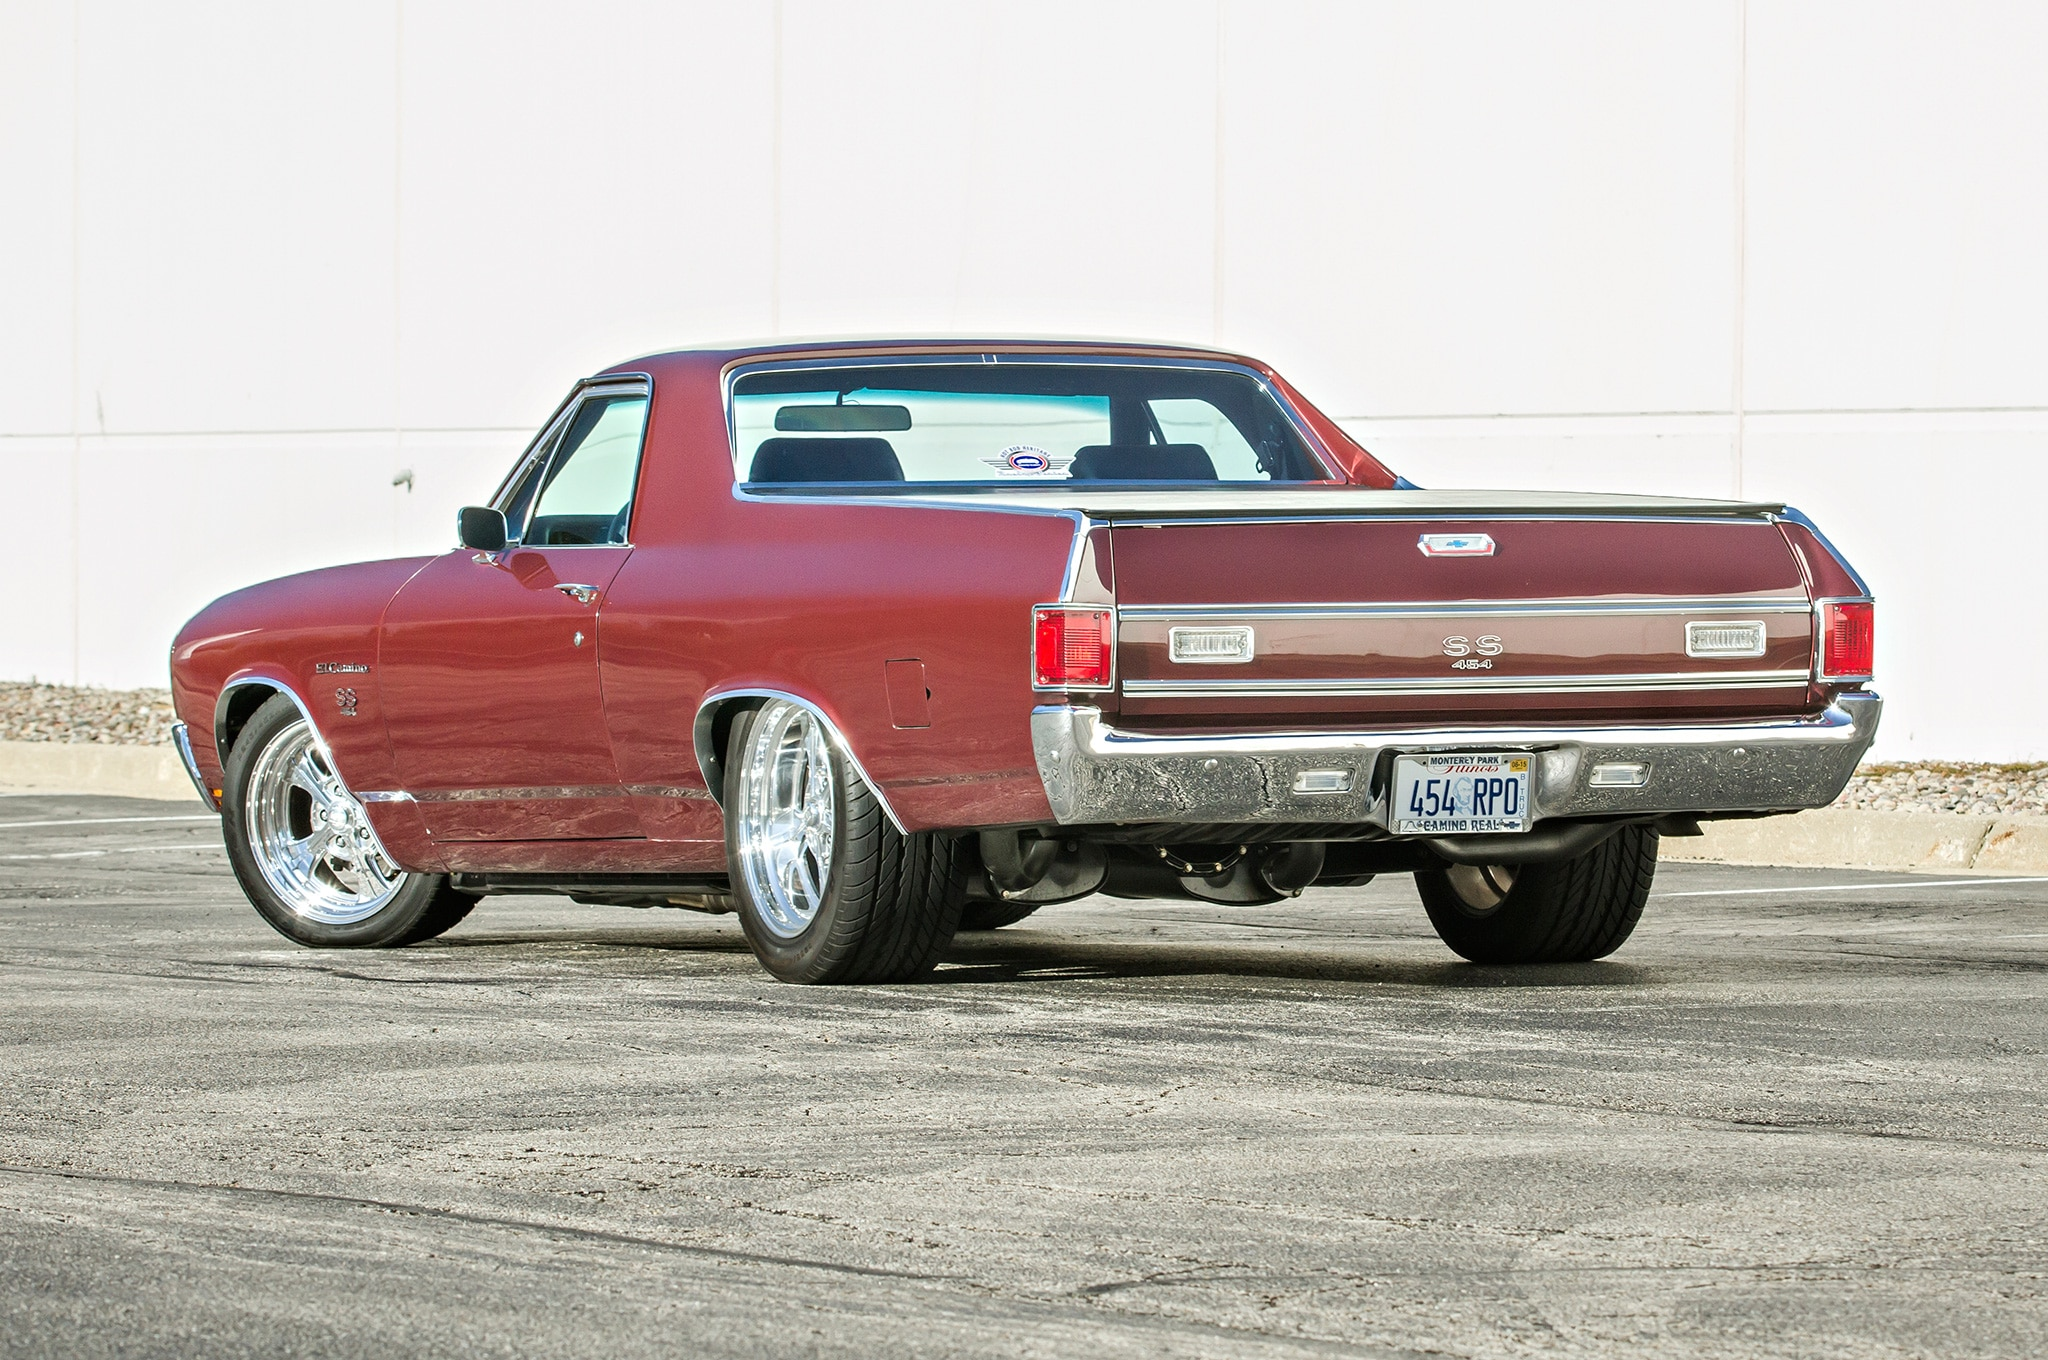 How e Enthusiast Built a 500 HP 1970 Chevrolet El Camino SS